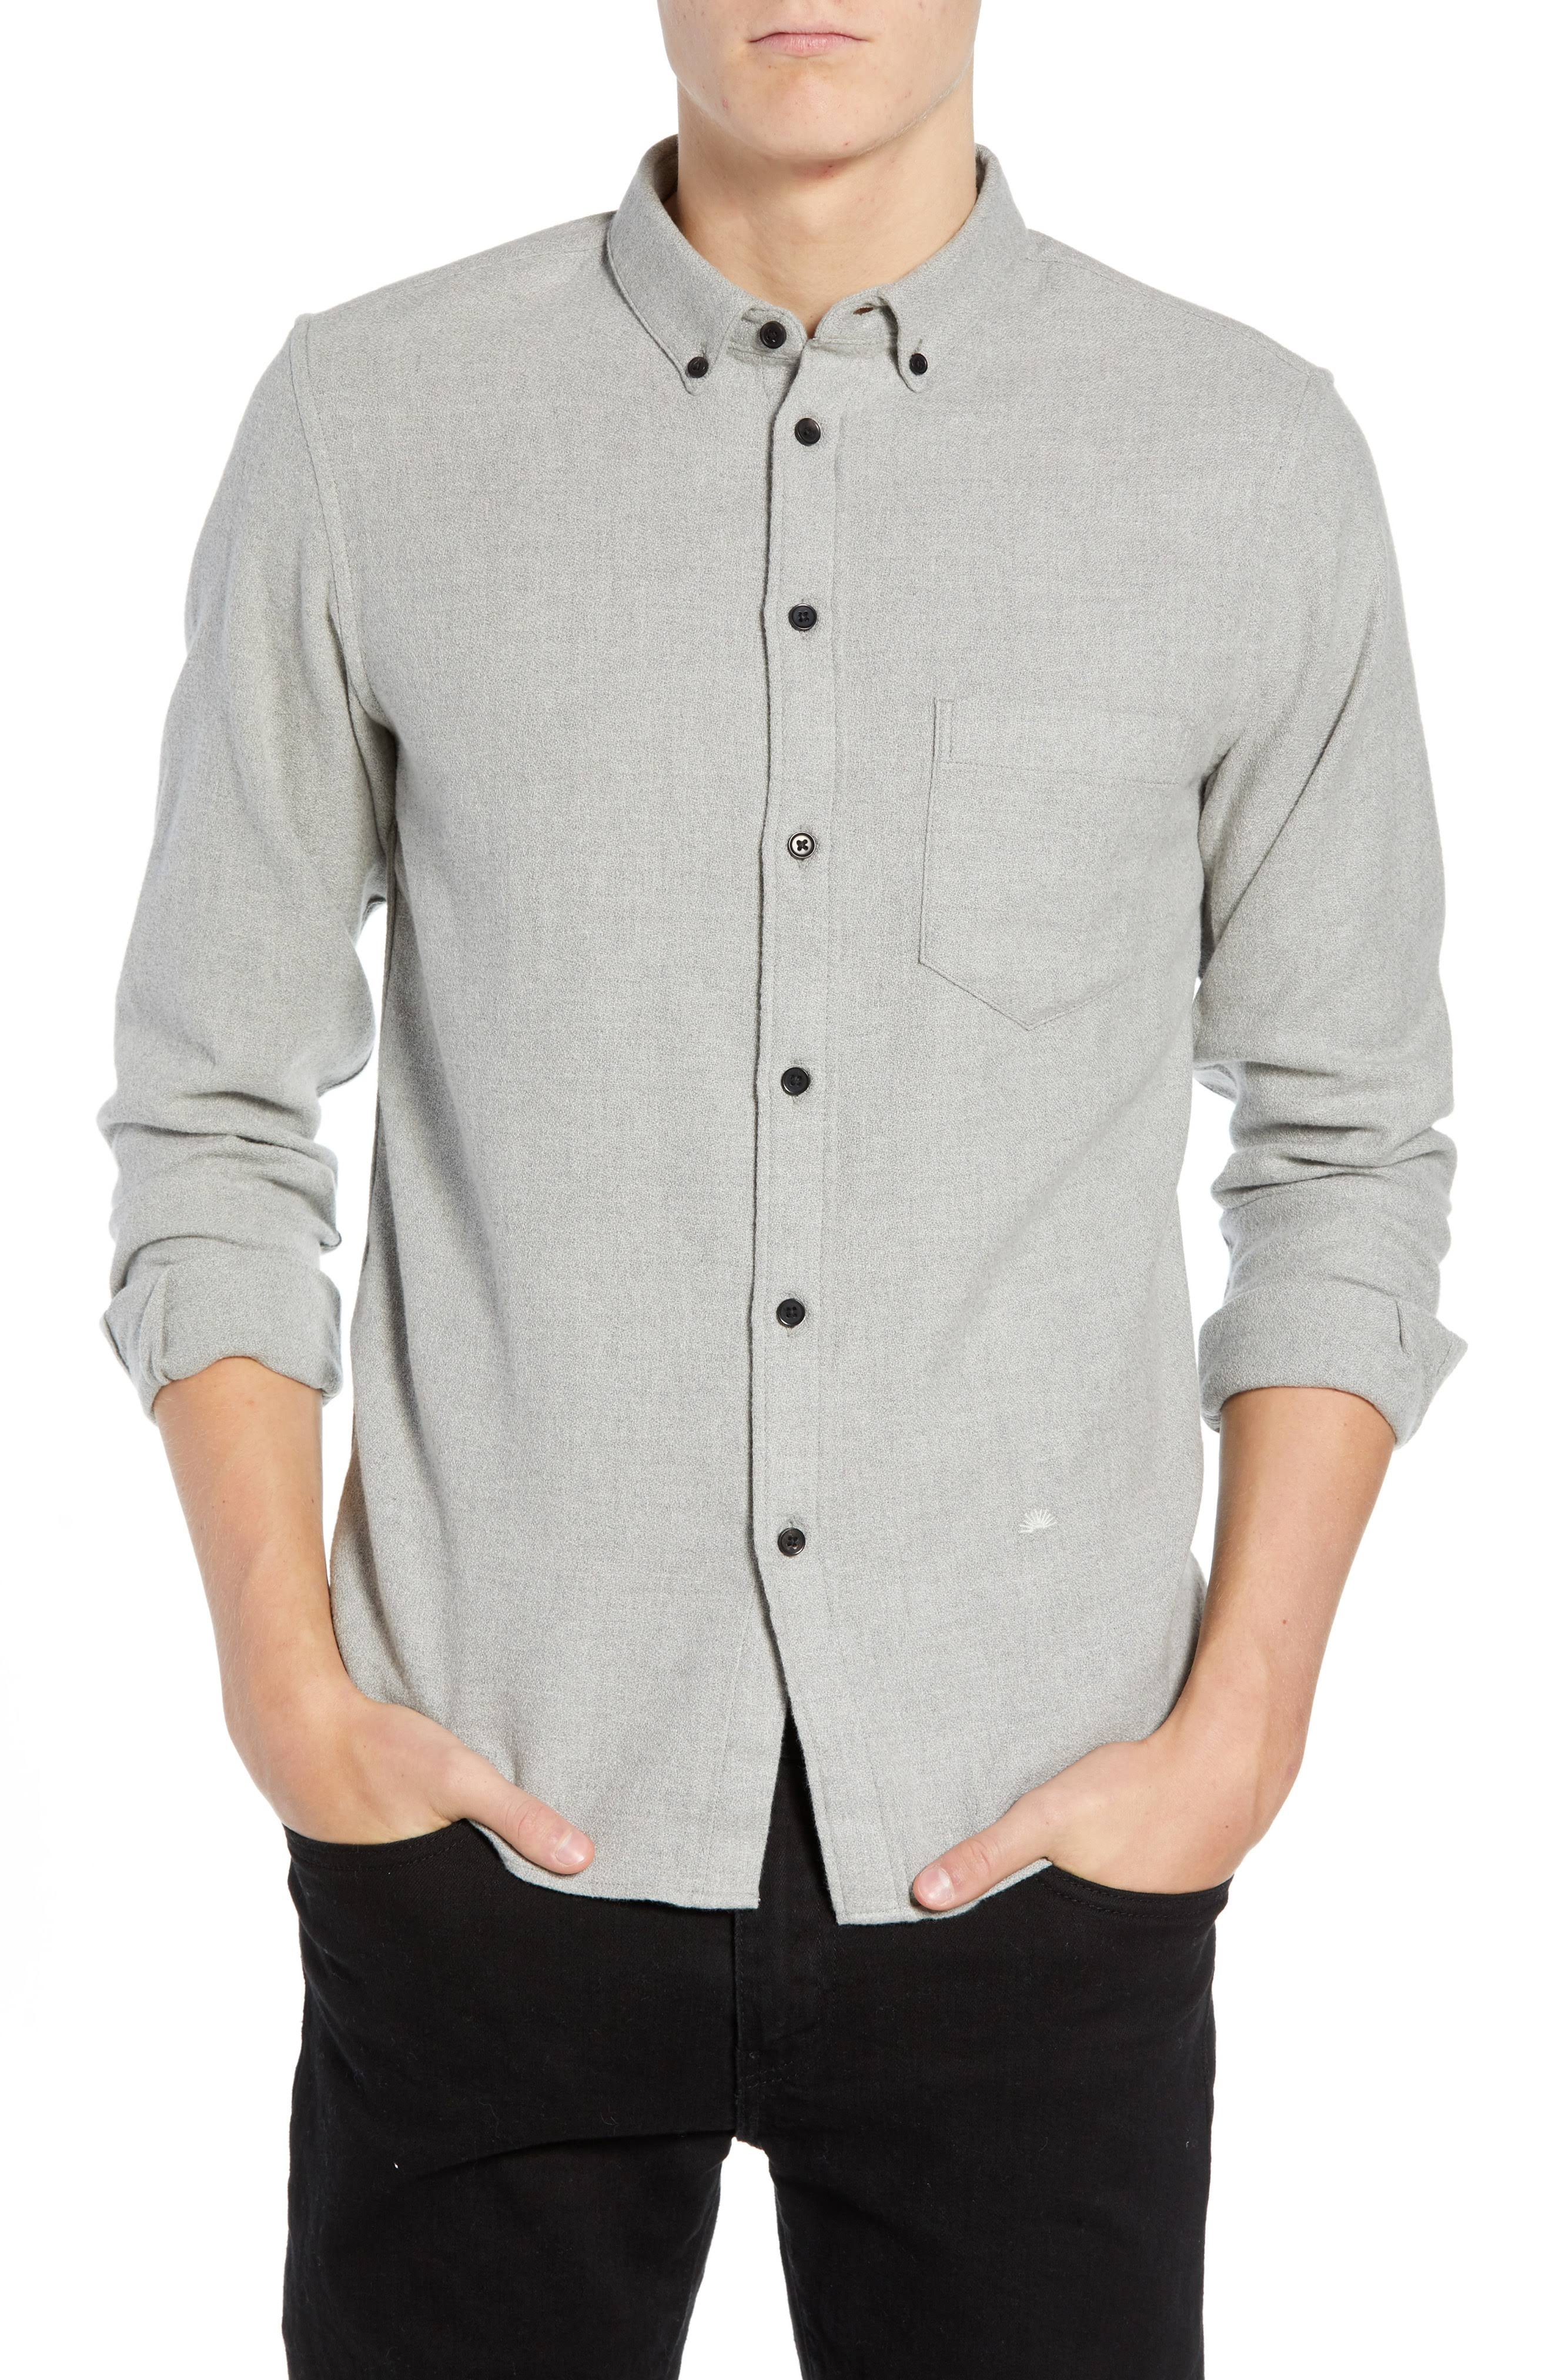 Hombre A Levi De amp; Gris Camisa Mano Hecha Co Strauss rvWTTqwPS